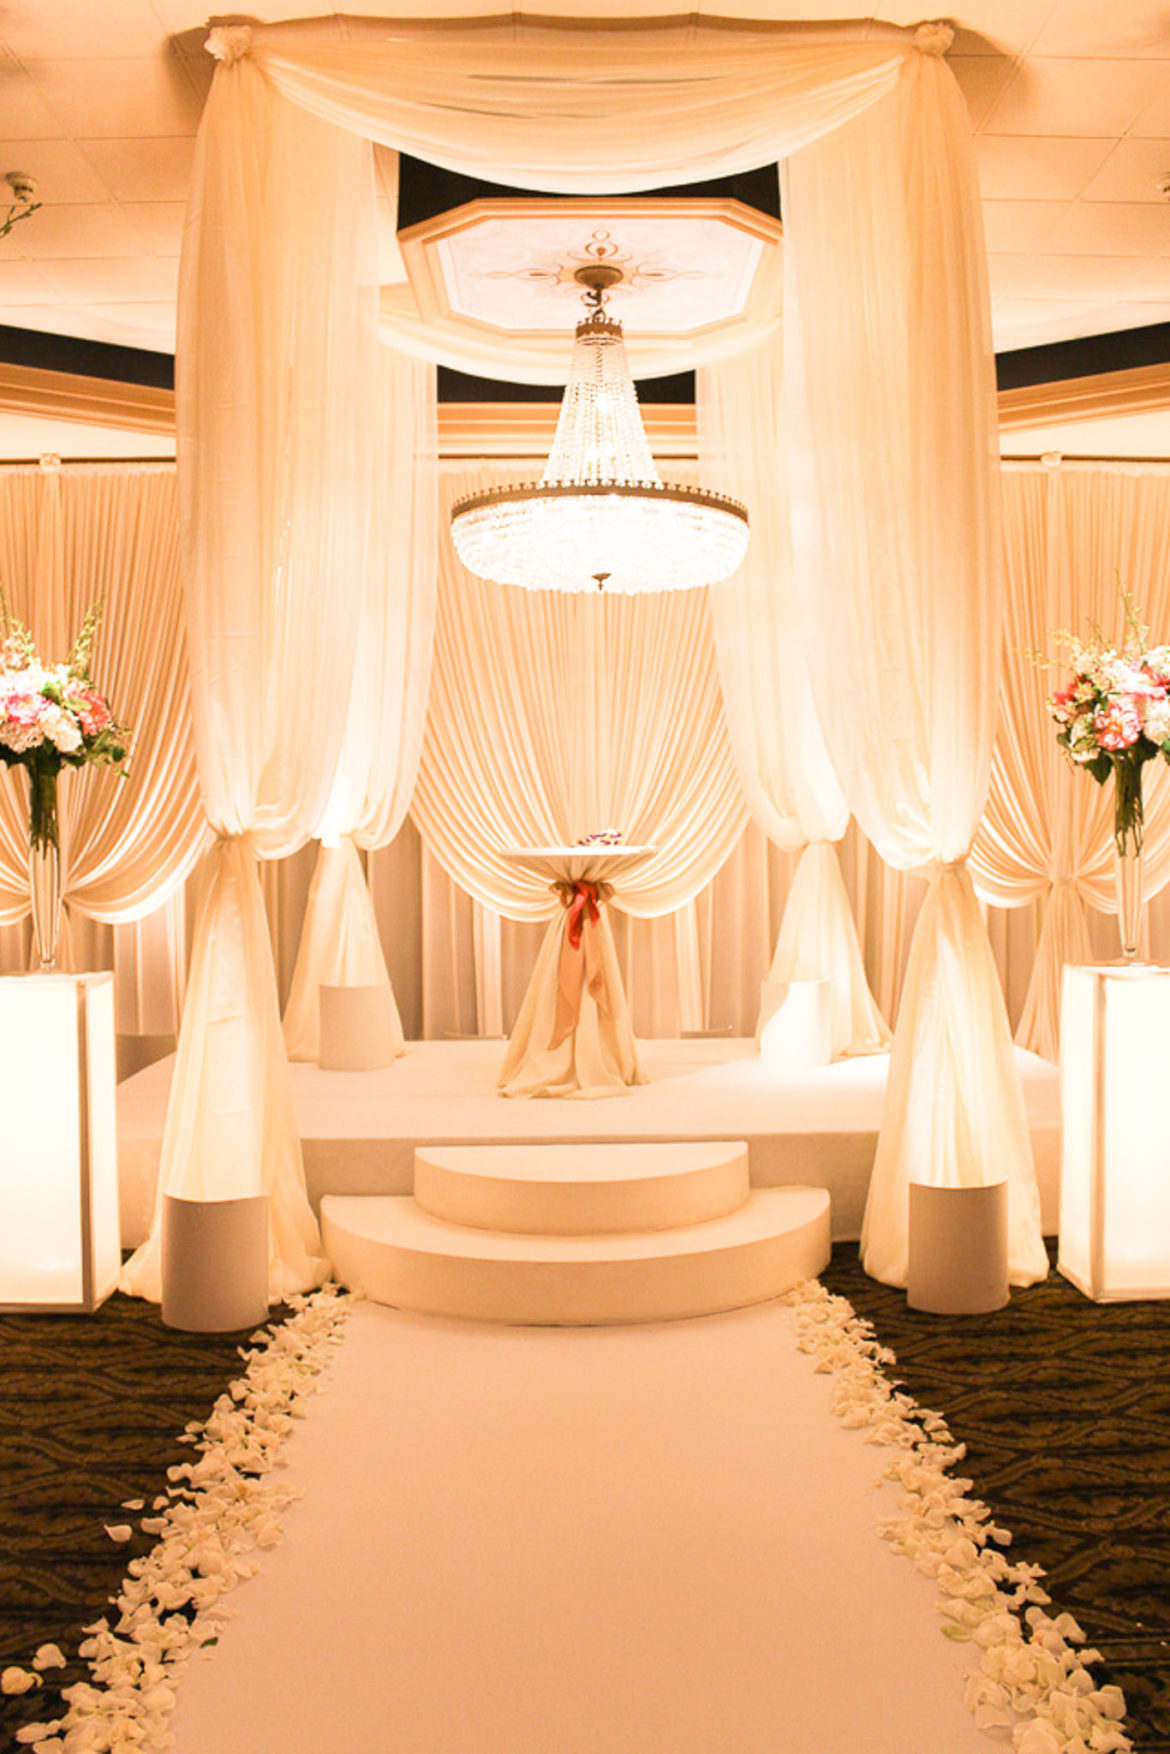 Elegant_Event_Lighting_Chicago_Carlisle_Wedding_Amber_Uplighting_Backdrop_Chuppah_Bridal_Canopy_Flower_Pedestal_Ceremony